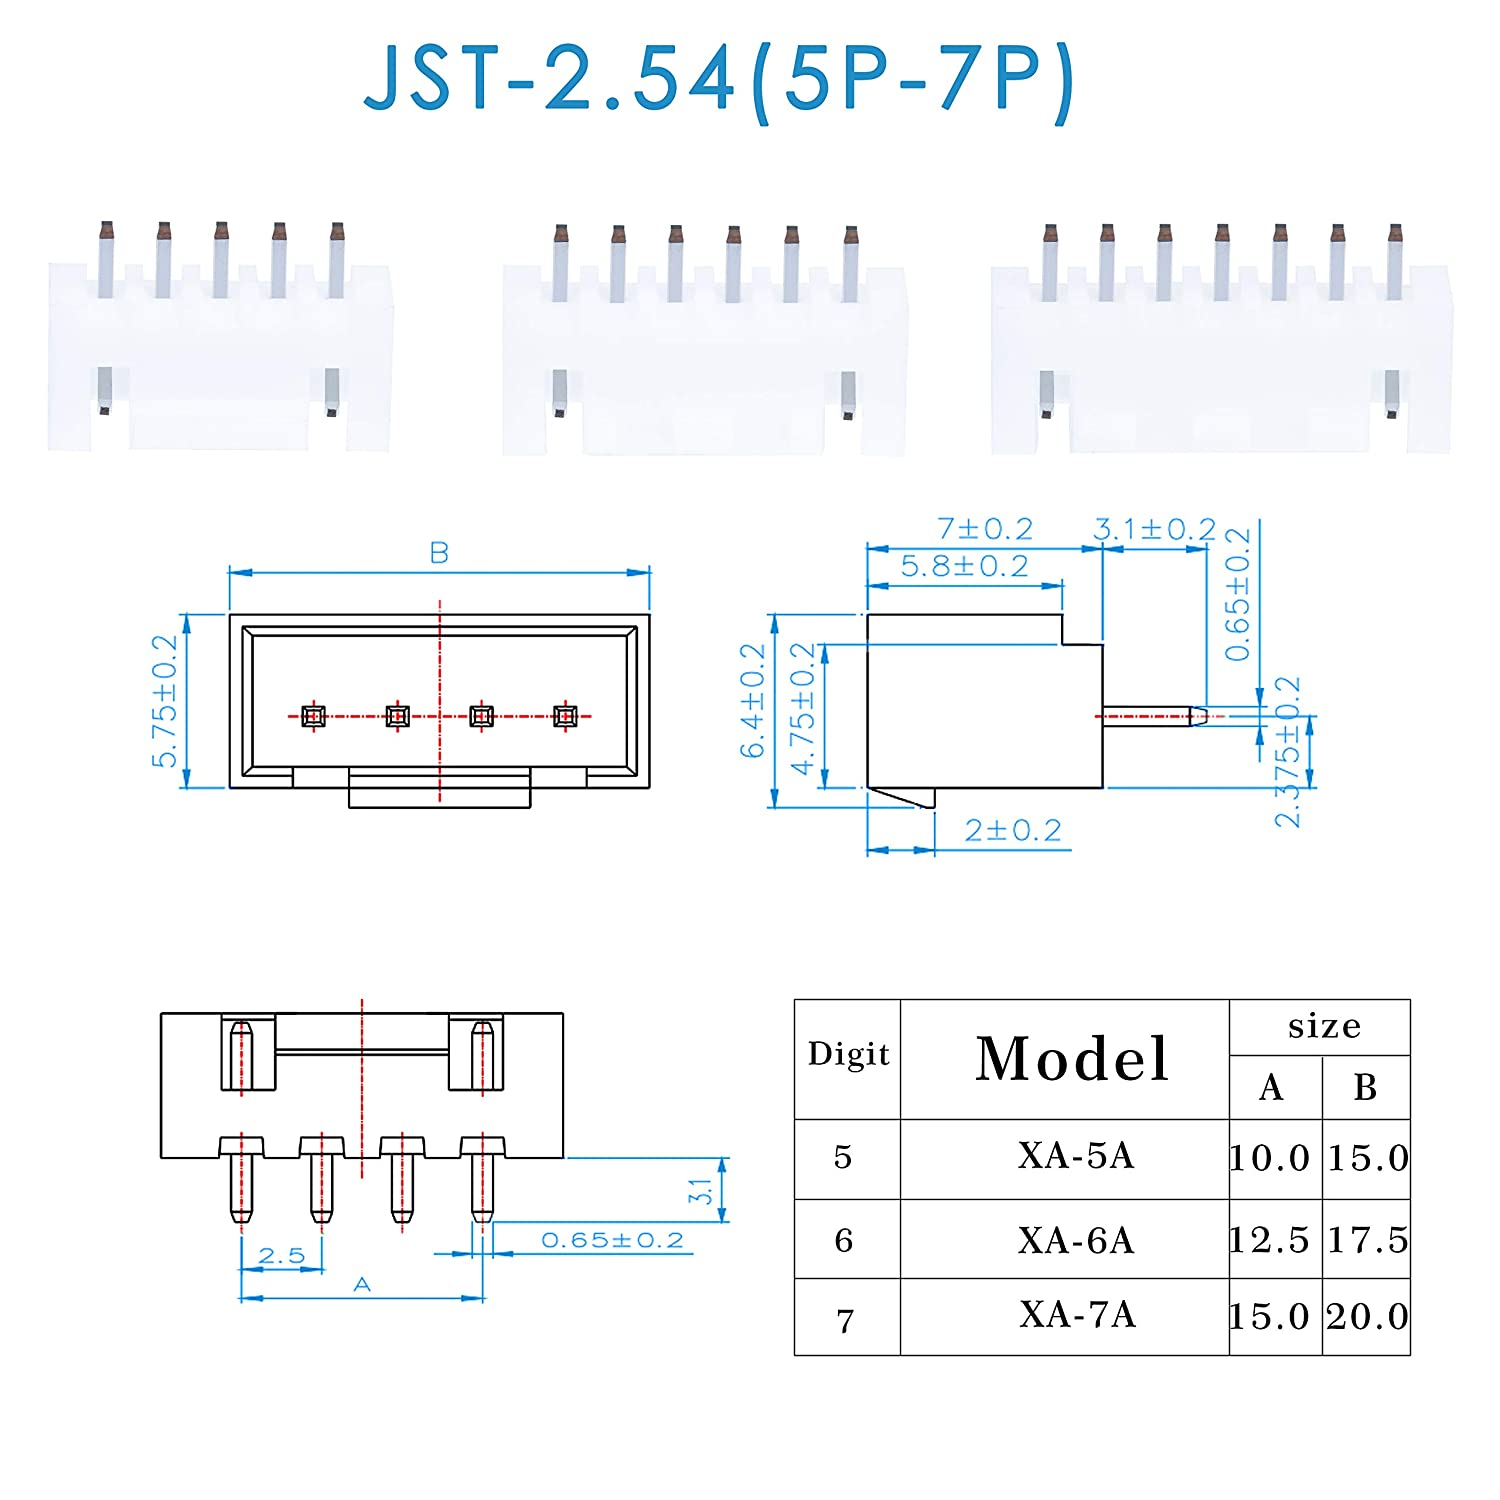 JST XA 5//6 // 7 Pin Housing JST Adapter Cable Connector Socket Male and Female Crimp DIP Kit. 2.54mm Pitch Female Pin Header CQRobot 360 Pieces 2.54mm JST-XA JST Connector Kit